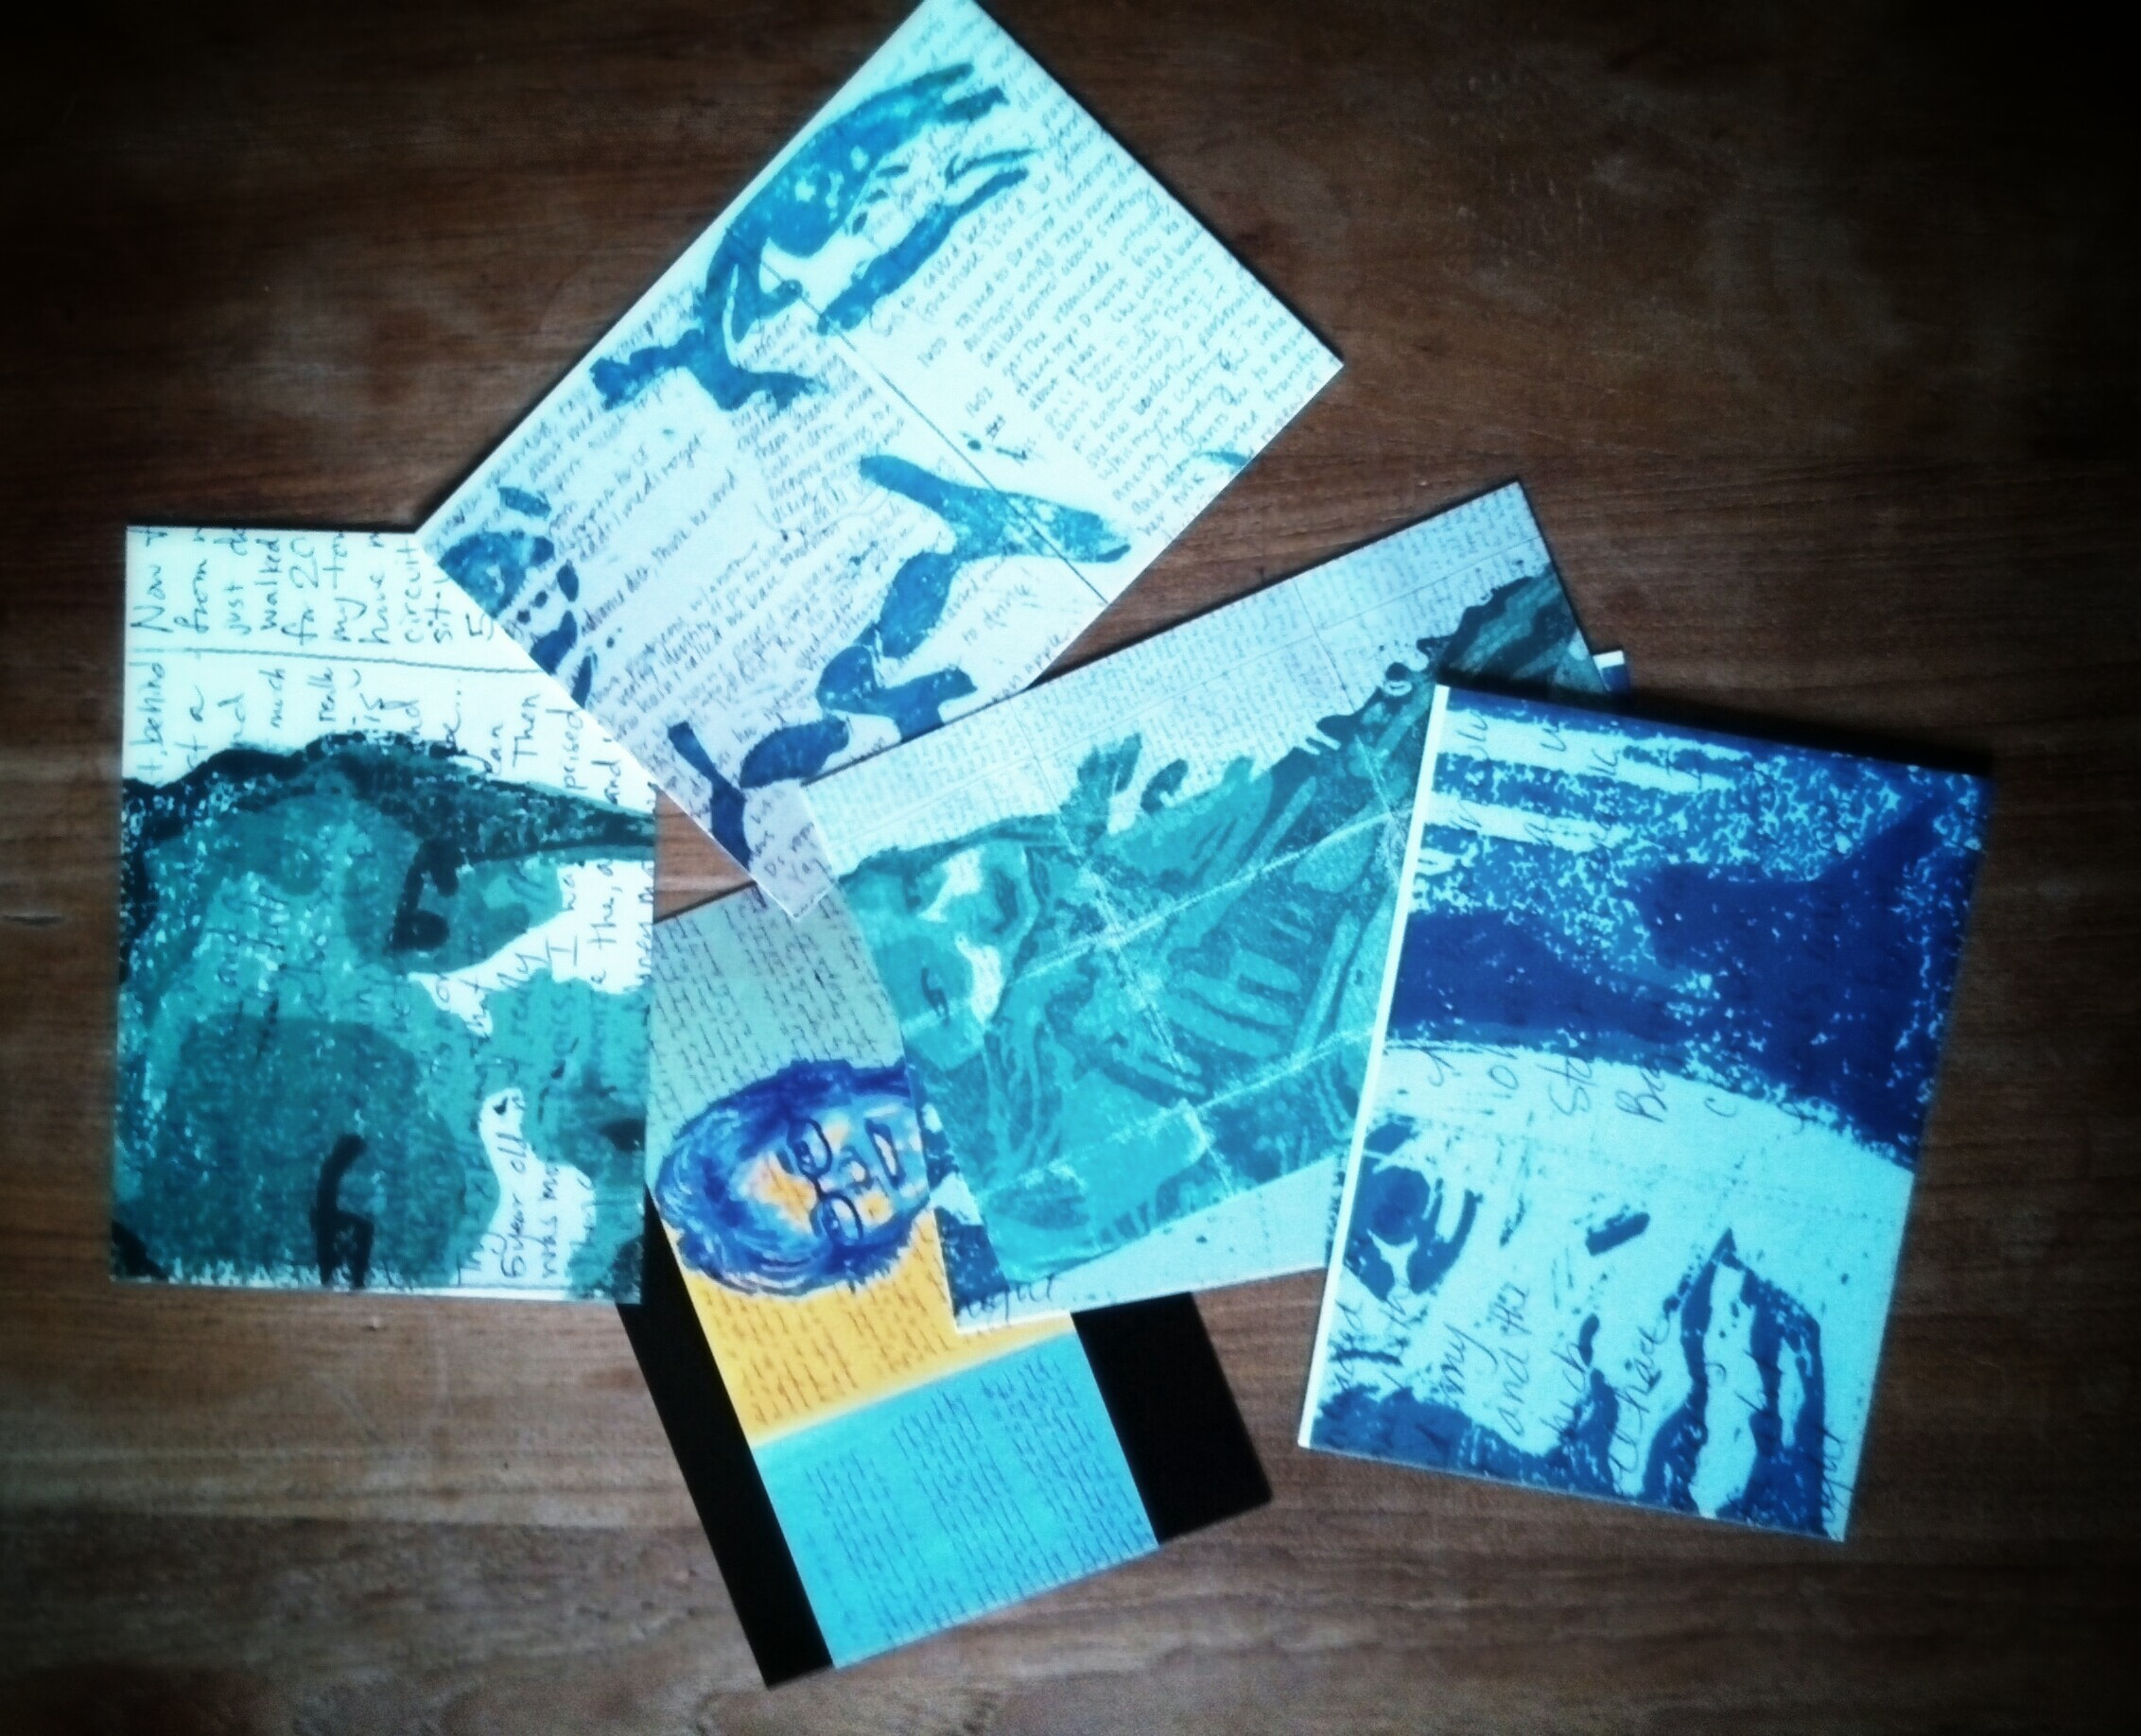 Postcard reproductions of my latest art project